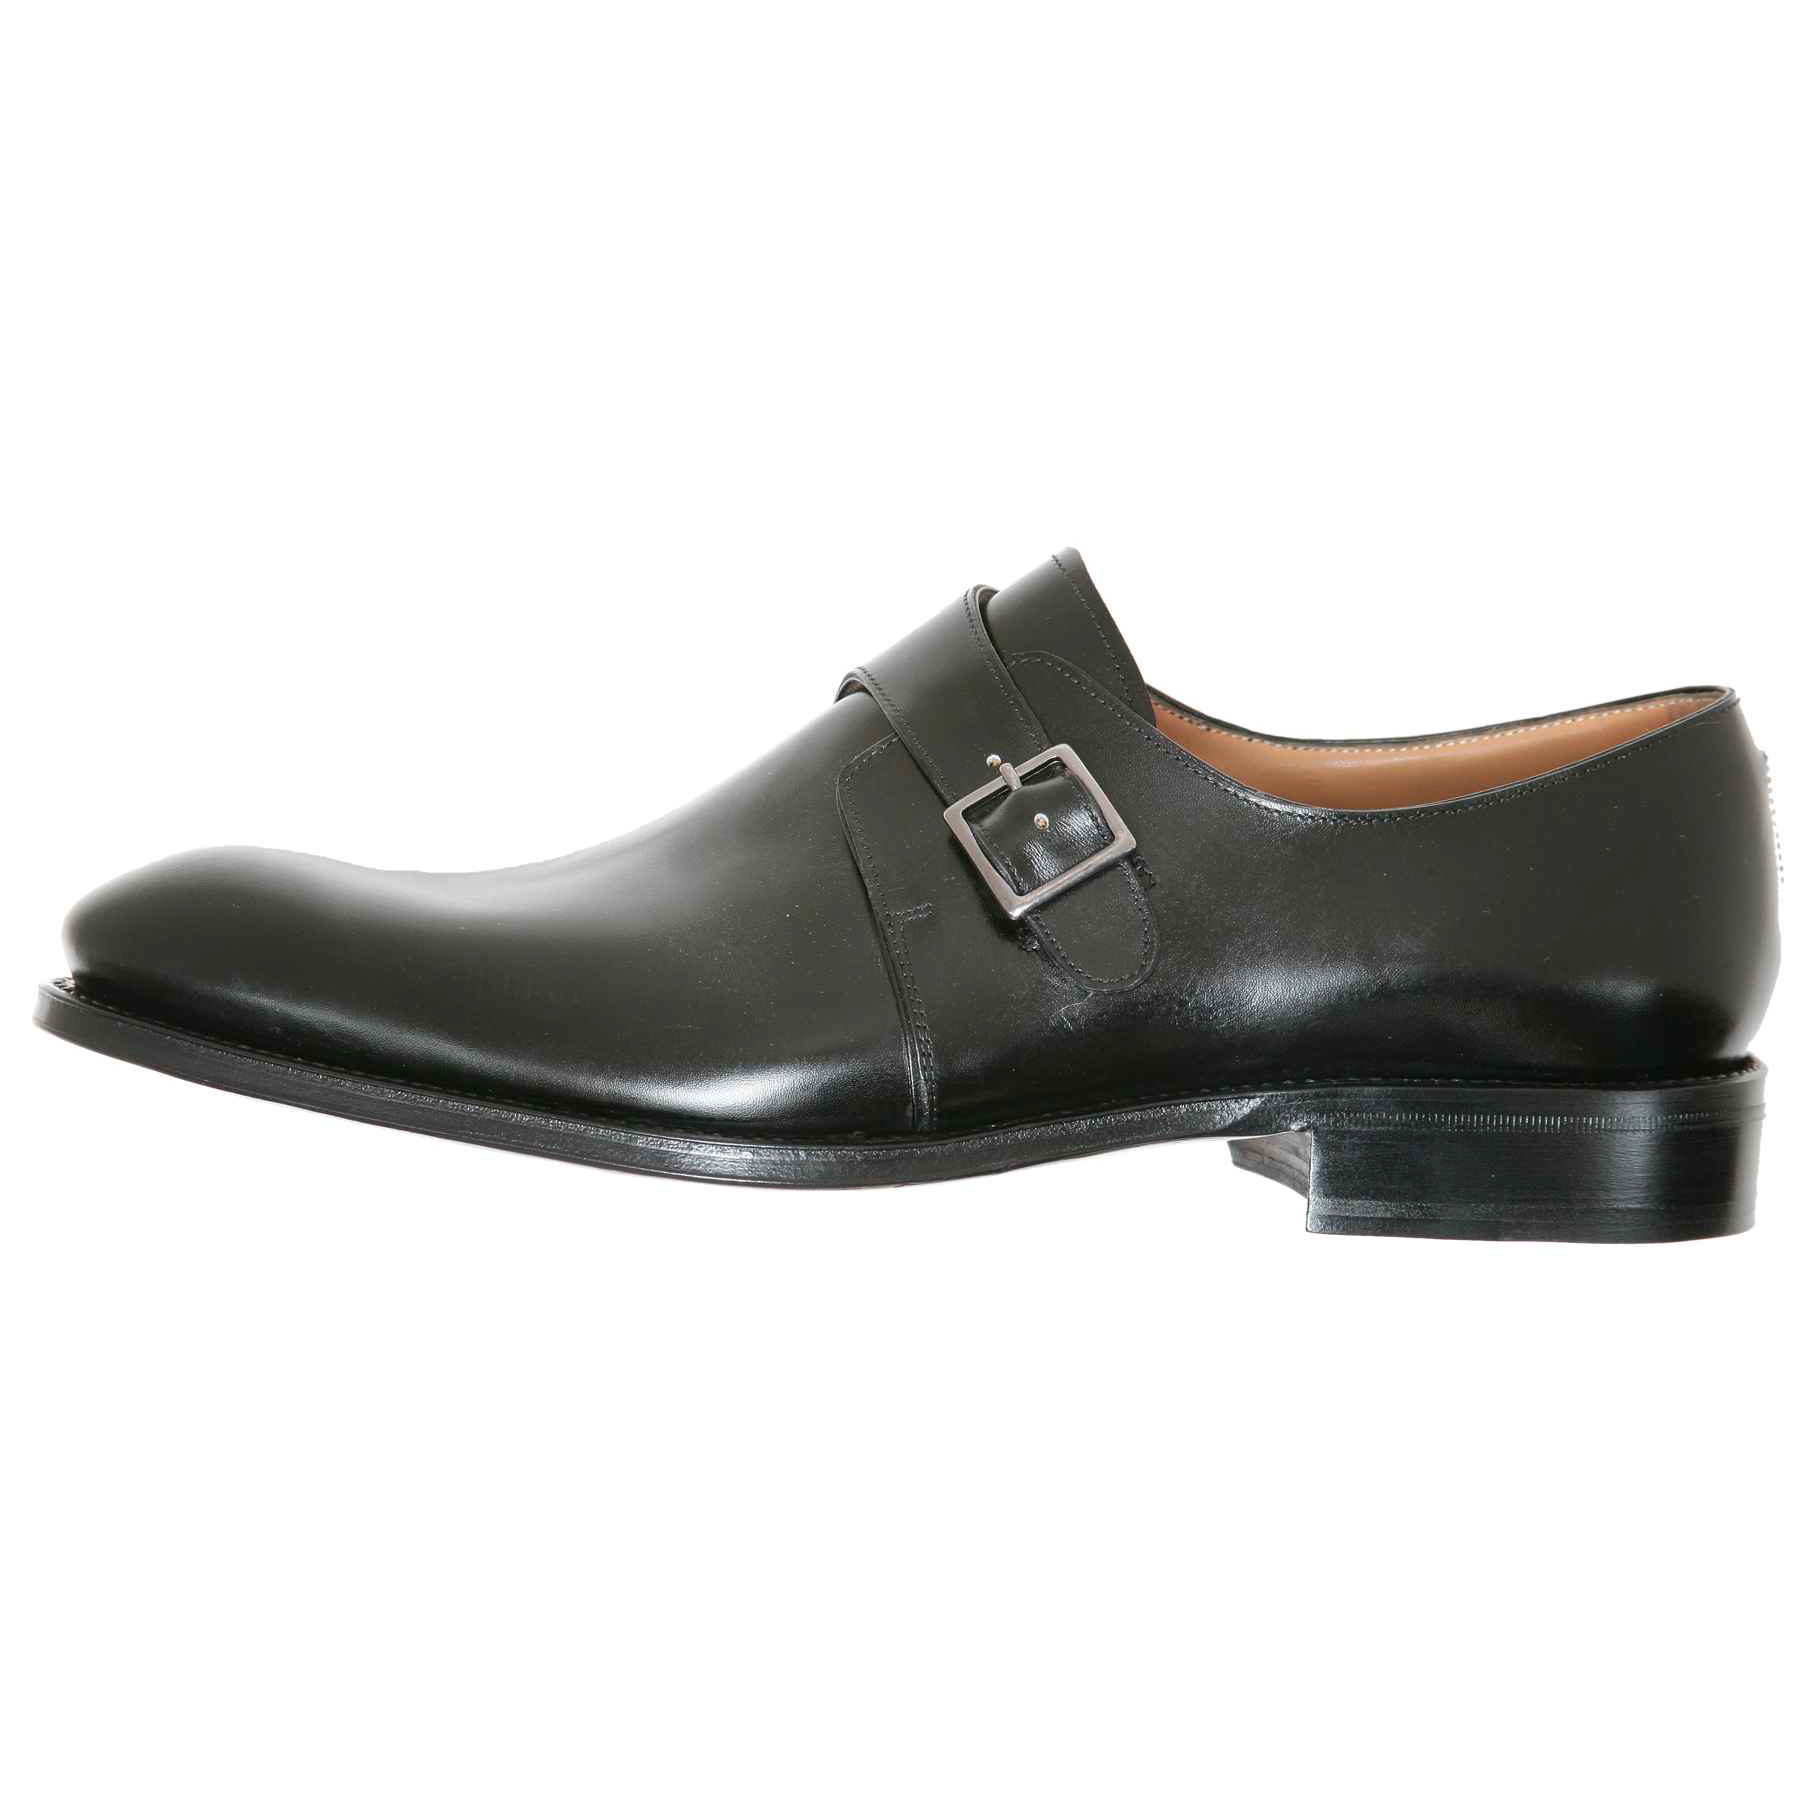 Made in italy shoes online. Shoes online for women